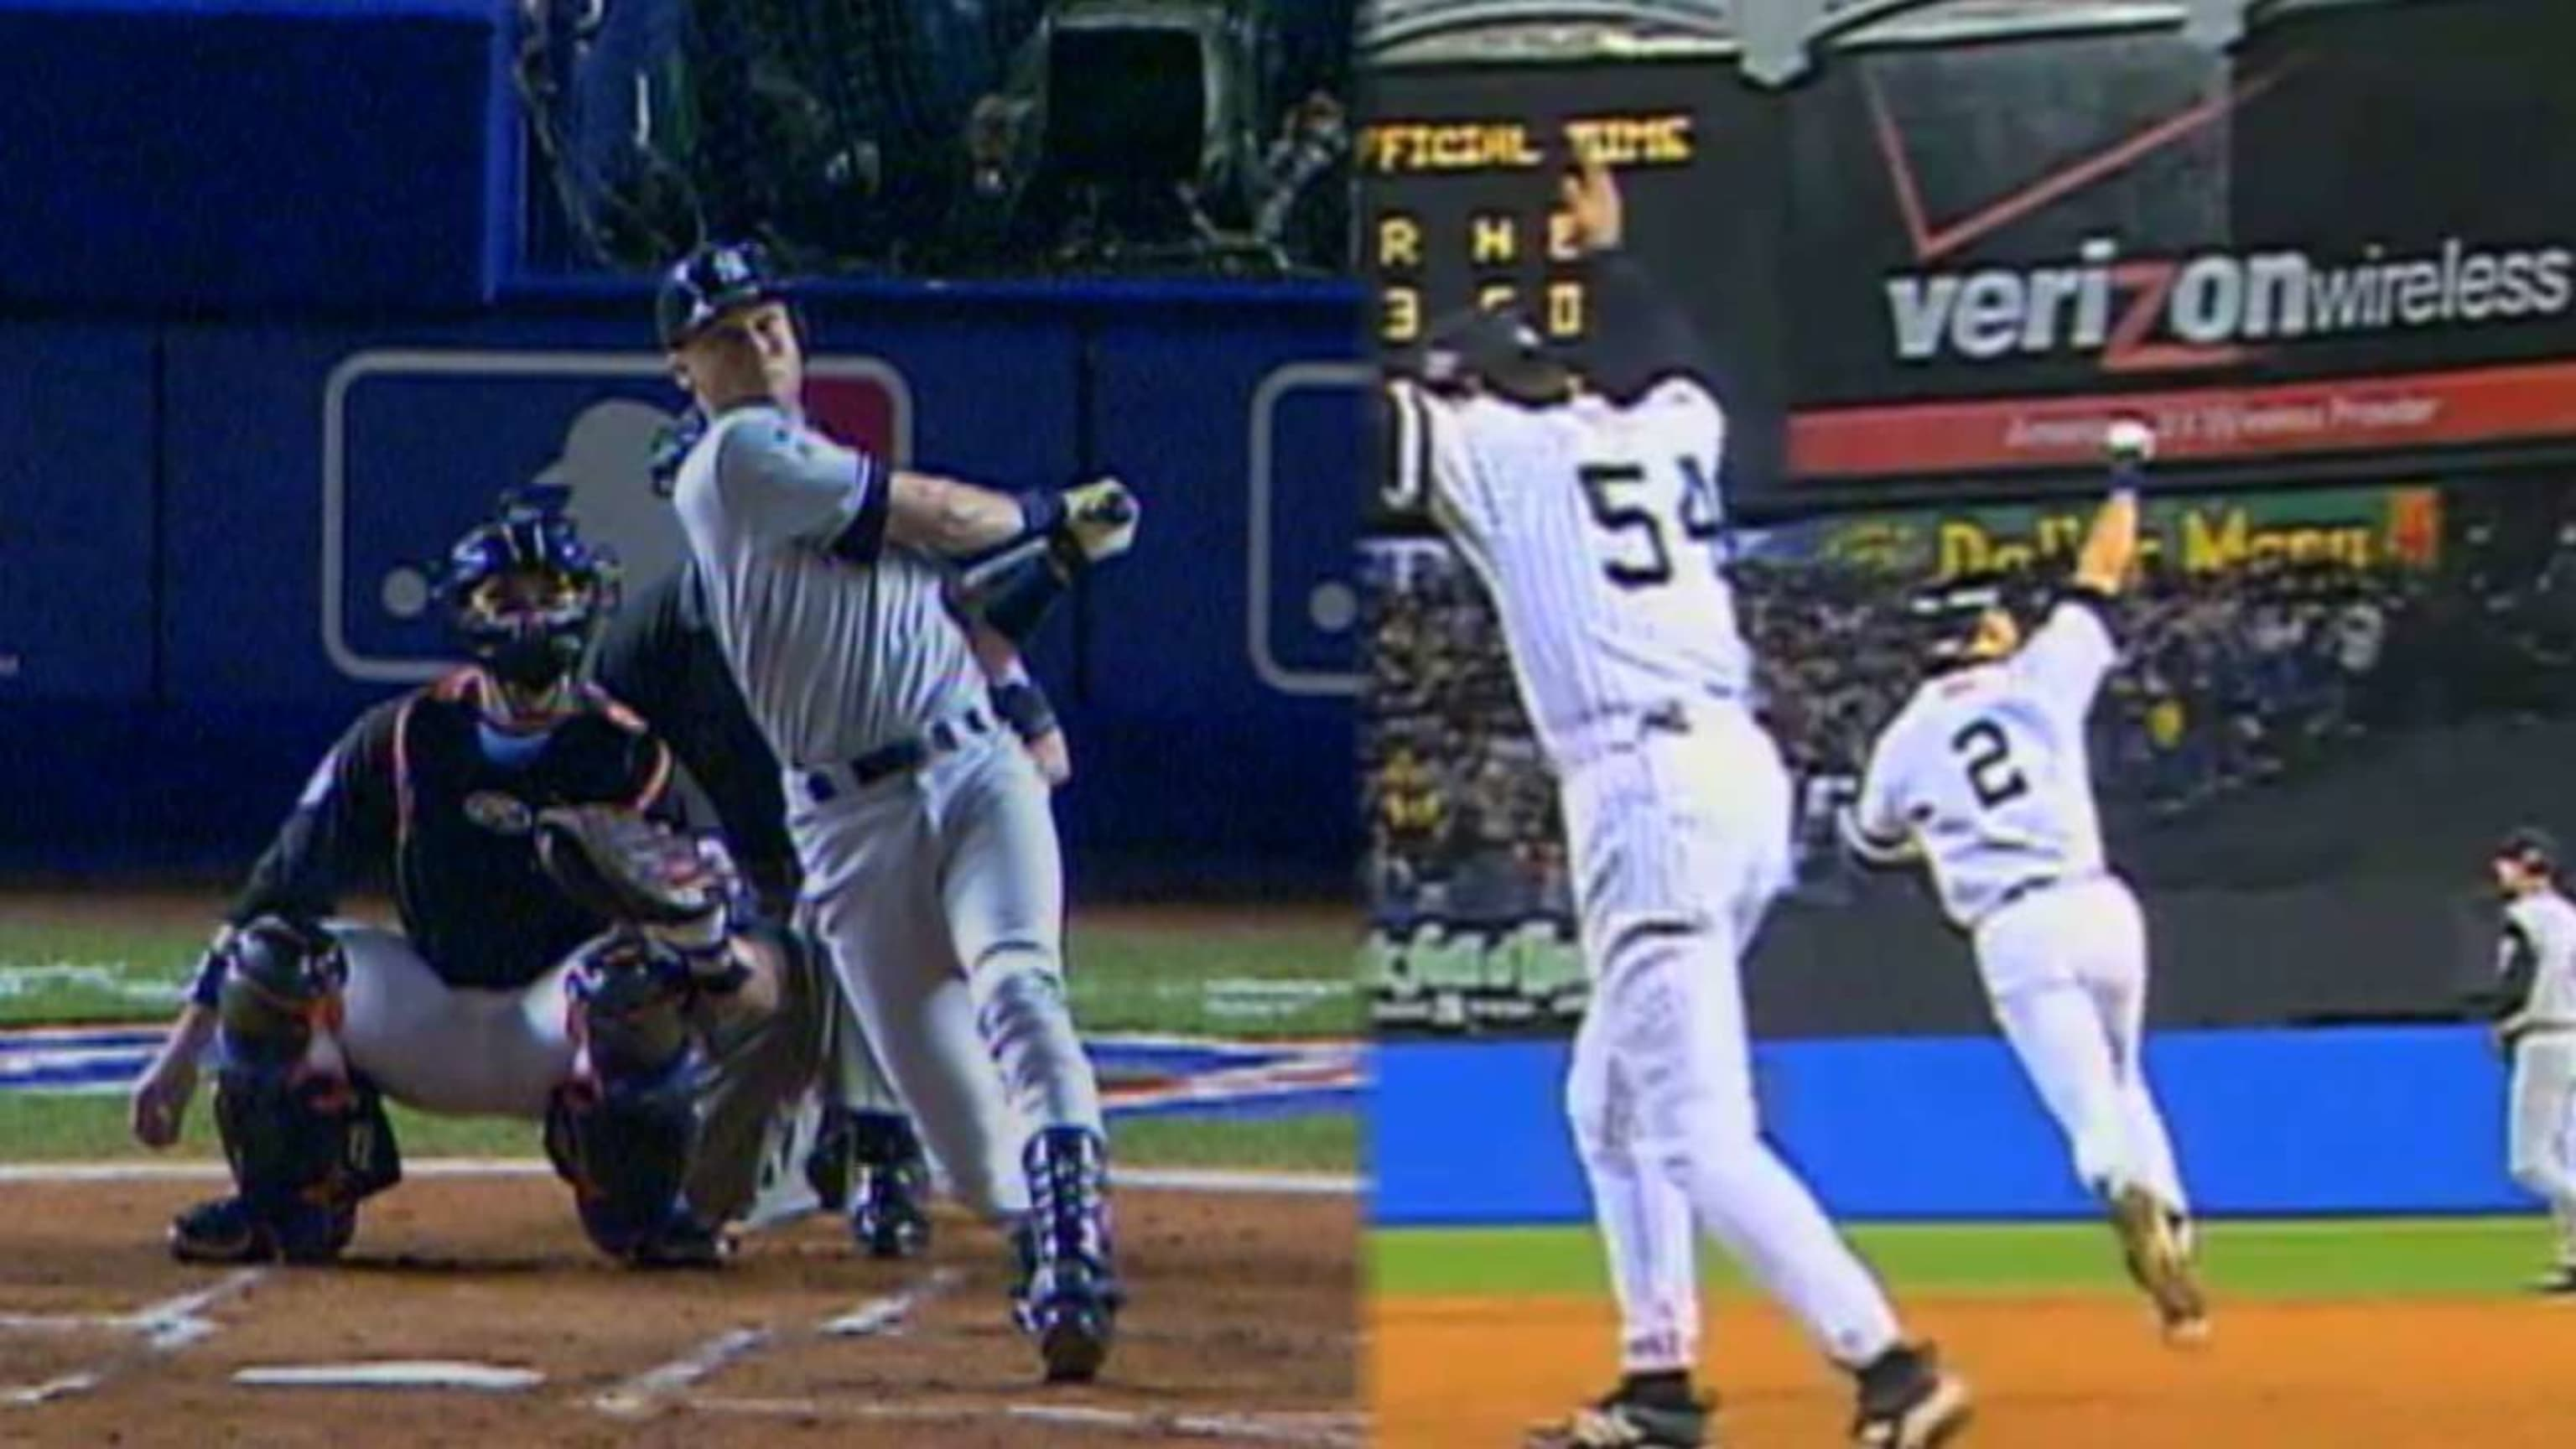 Jeter's historic WS homers